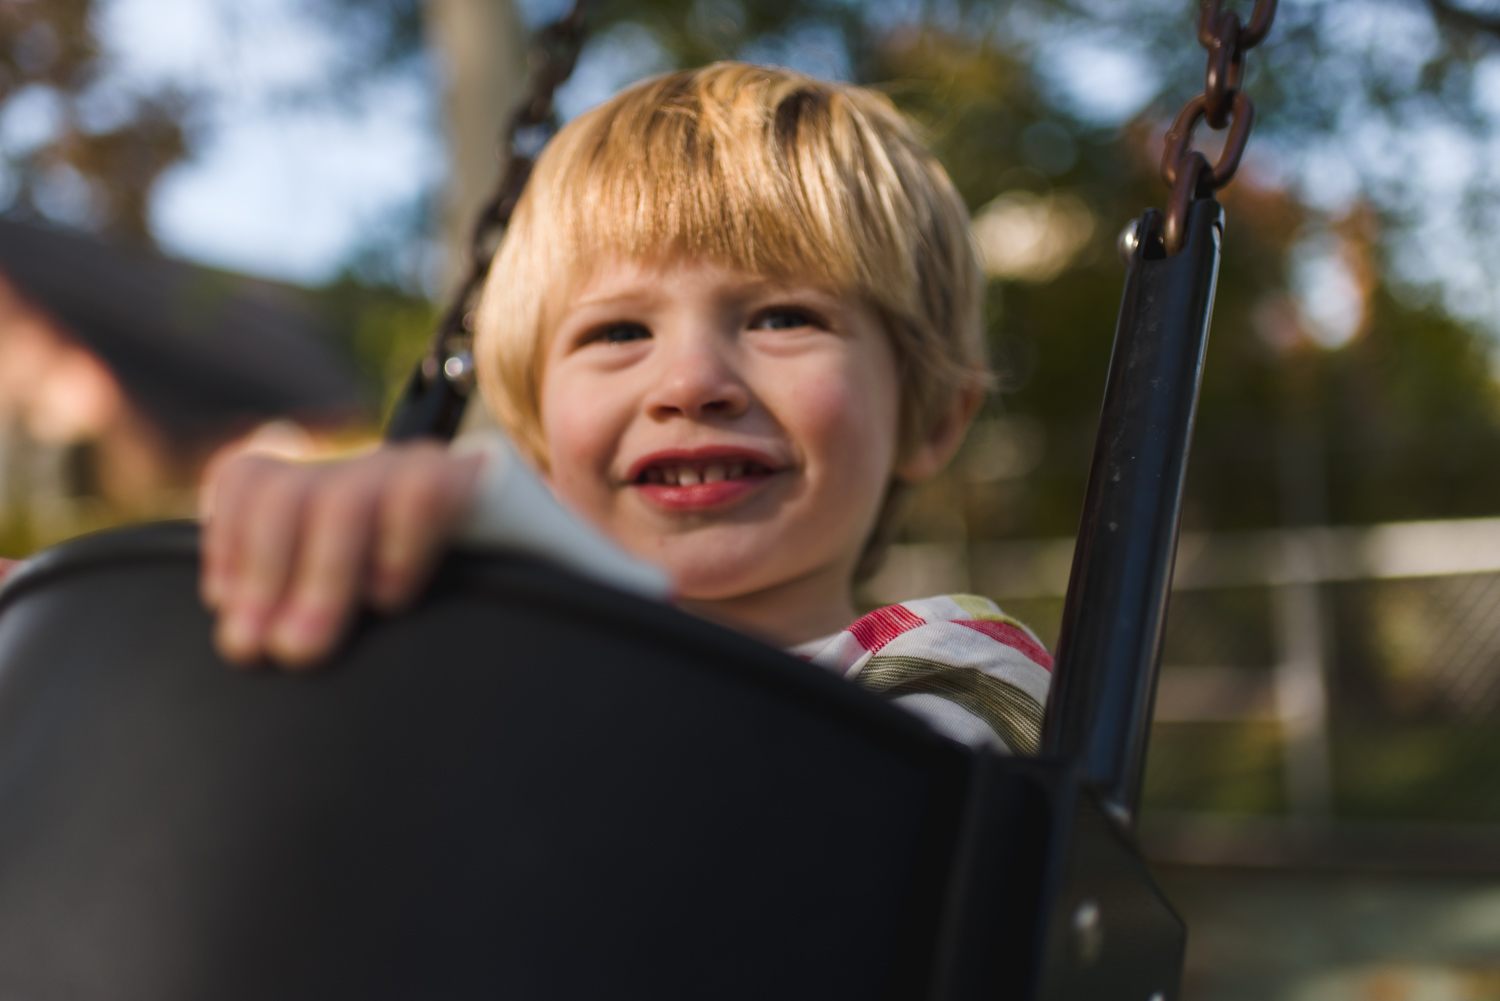 Toddler boy on a swing.